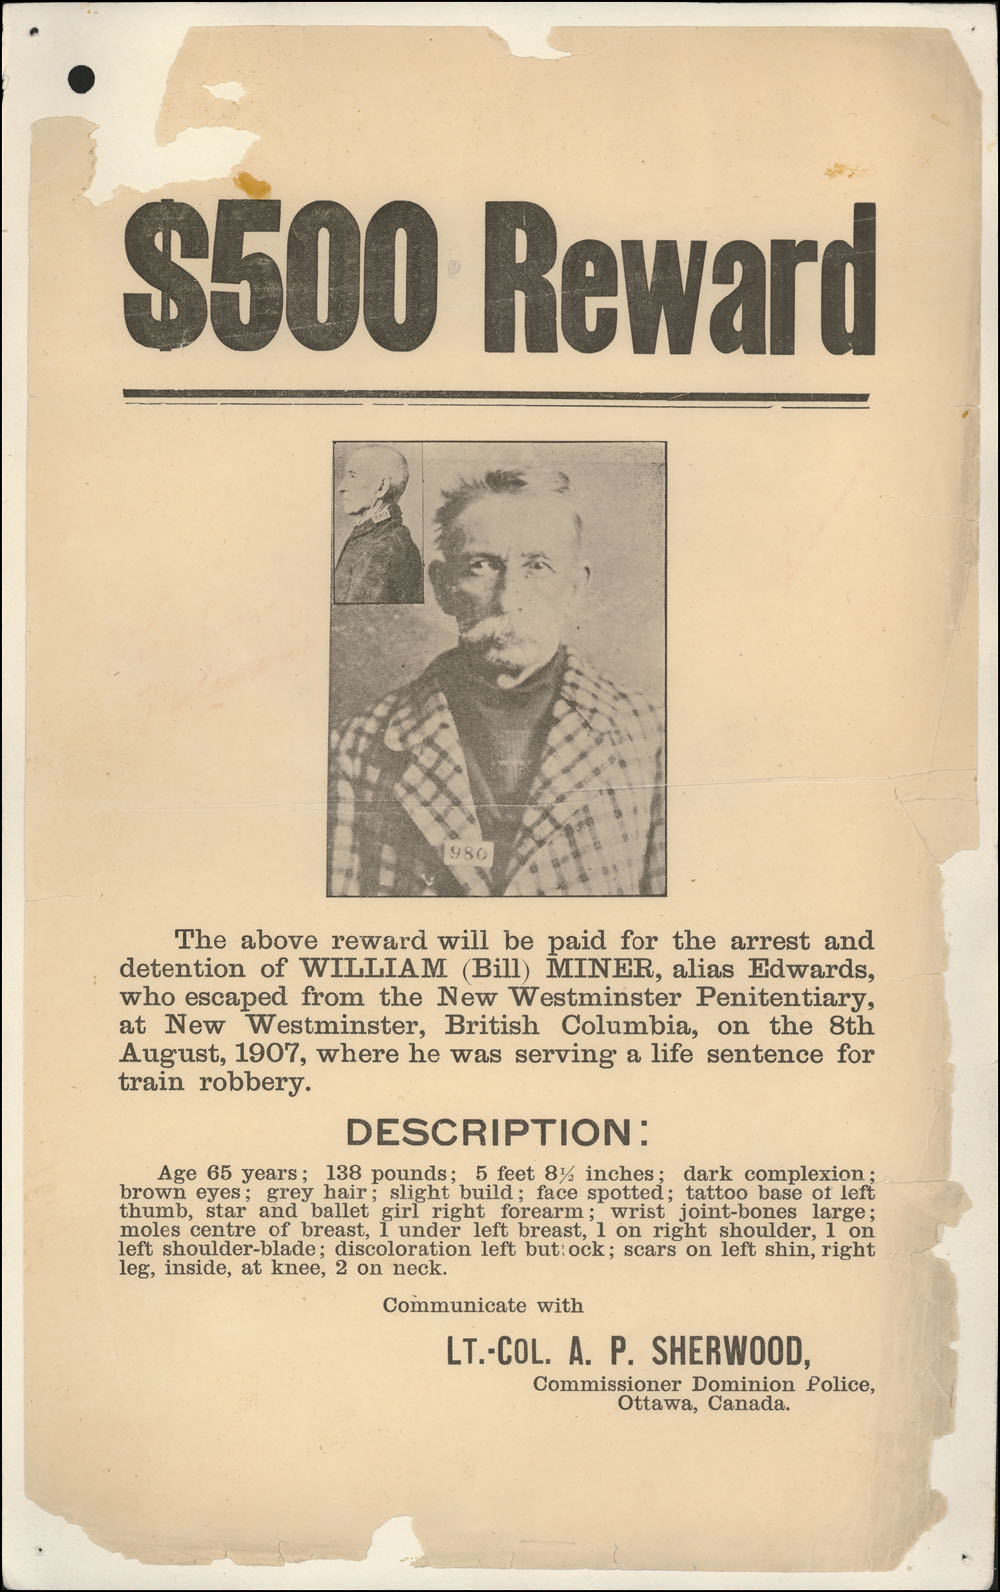 Reward notice for Bill Miner. Photo from Library and Archives Canada.